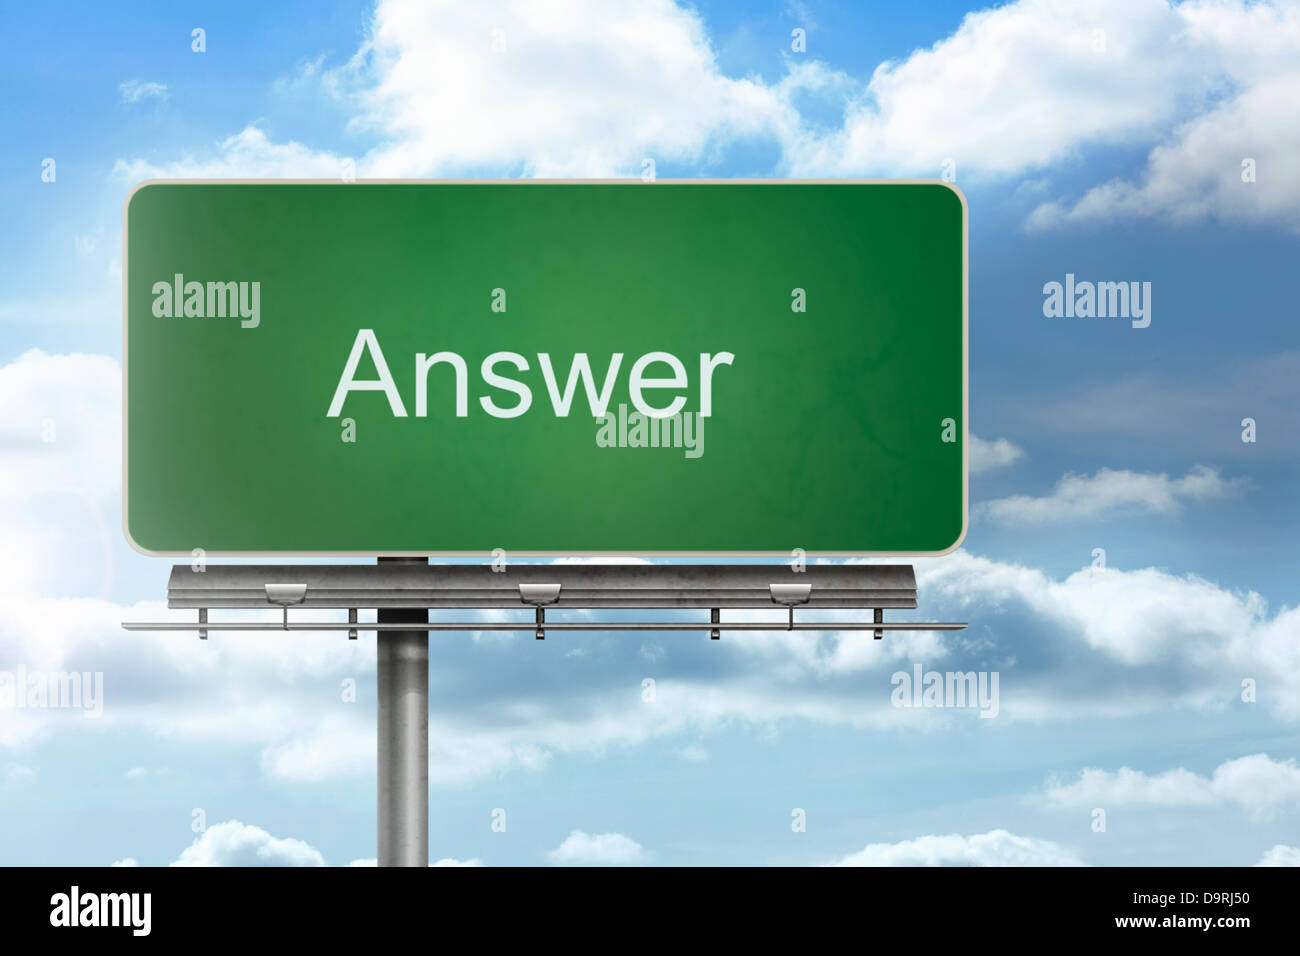 Sign spelling out answer - Stock Image